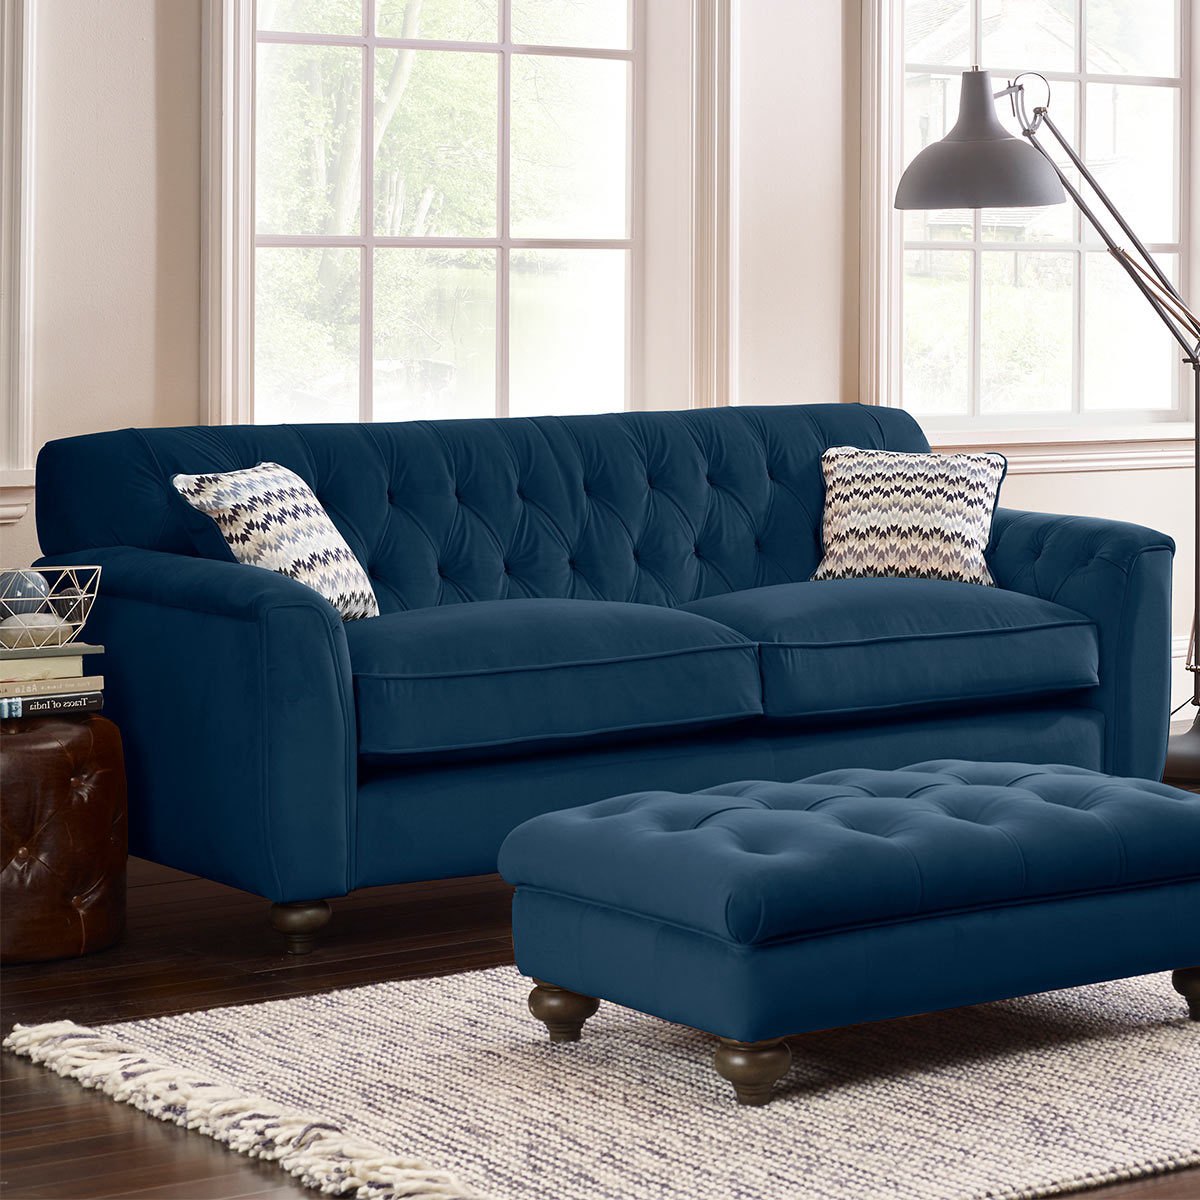 Lyvia Pillowback Sofa Sectional Sofas Regarding Well Liked Avante Button Back 4 Seater Velvet Sofa With 2 Accent (View 3 of 20)